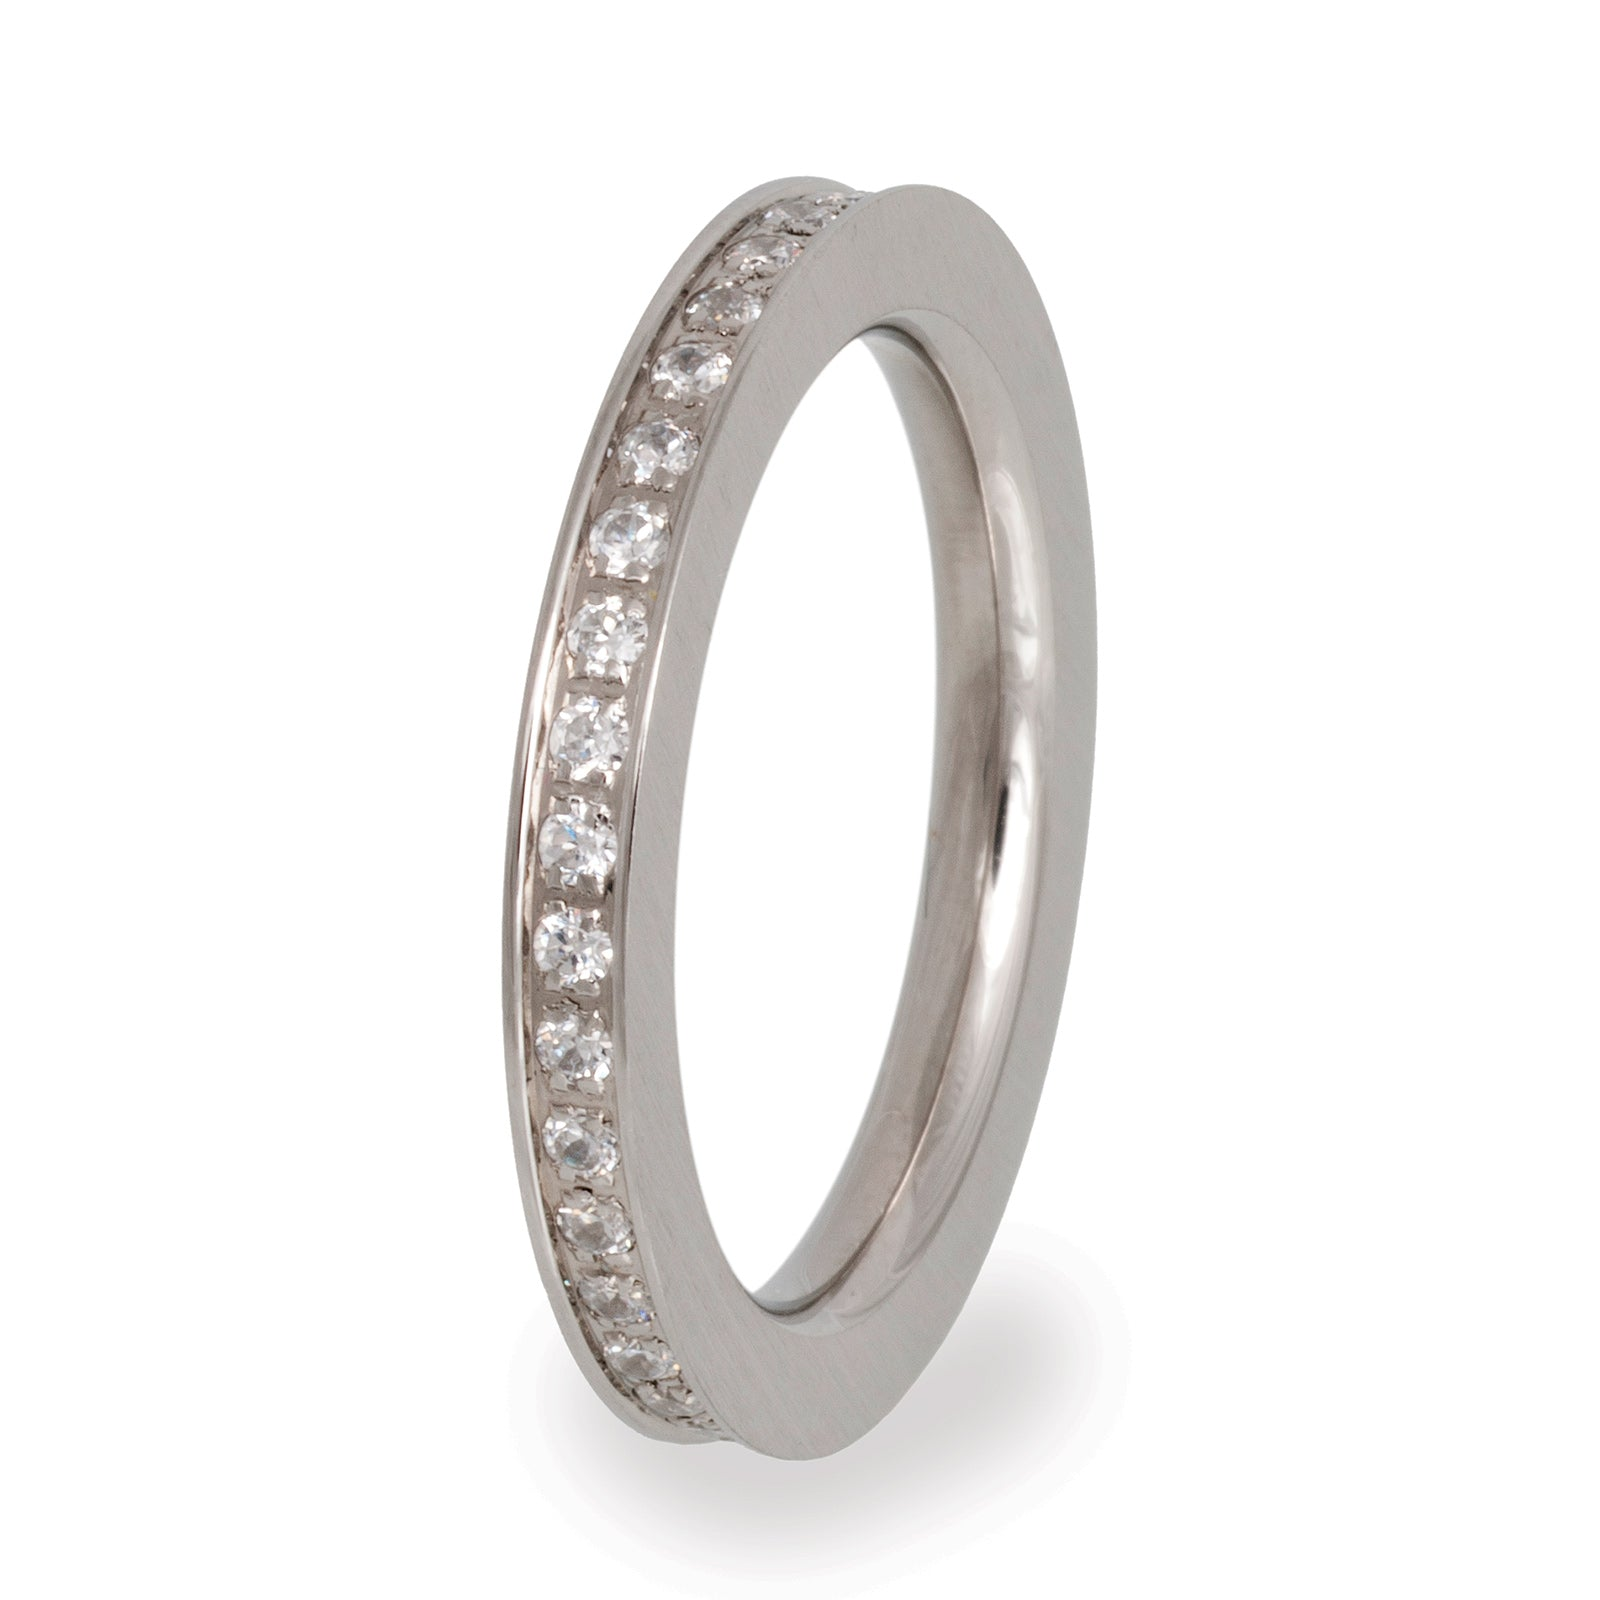 VR56 Stainless Steel Wedding Band